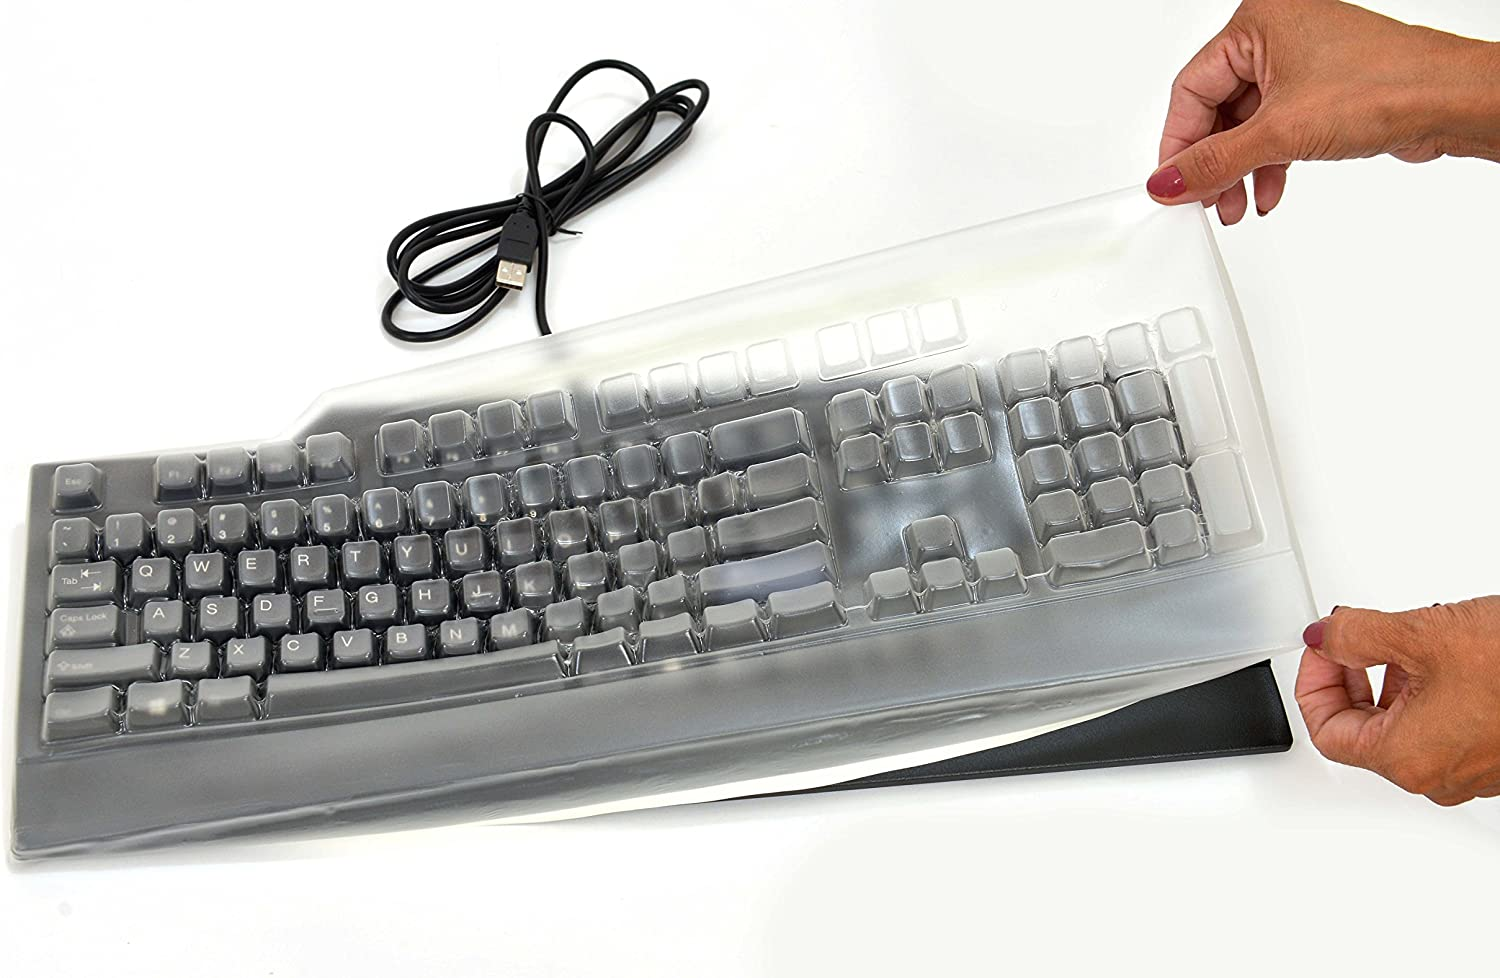 Comp Bind Technology Compatible Polyurethane LATEX FREE Keyboard cover Replacement for IBM/Lenovo KU-0225.